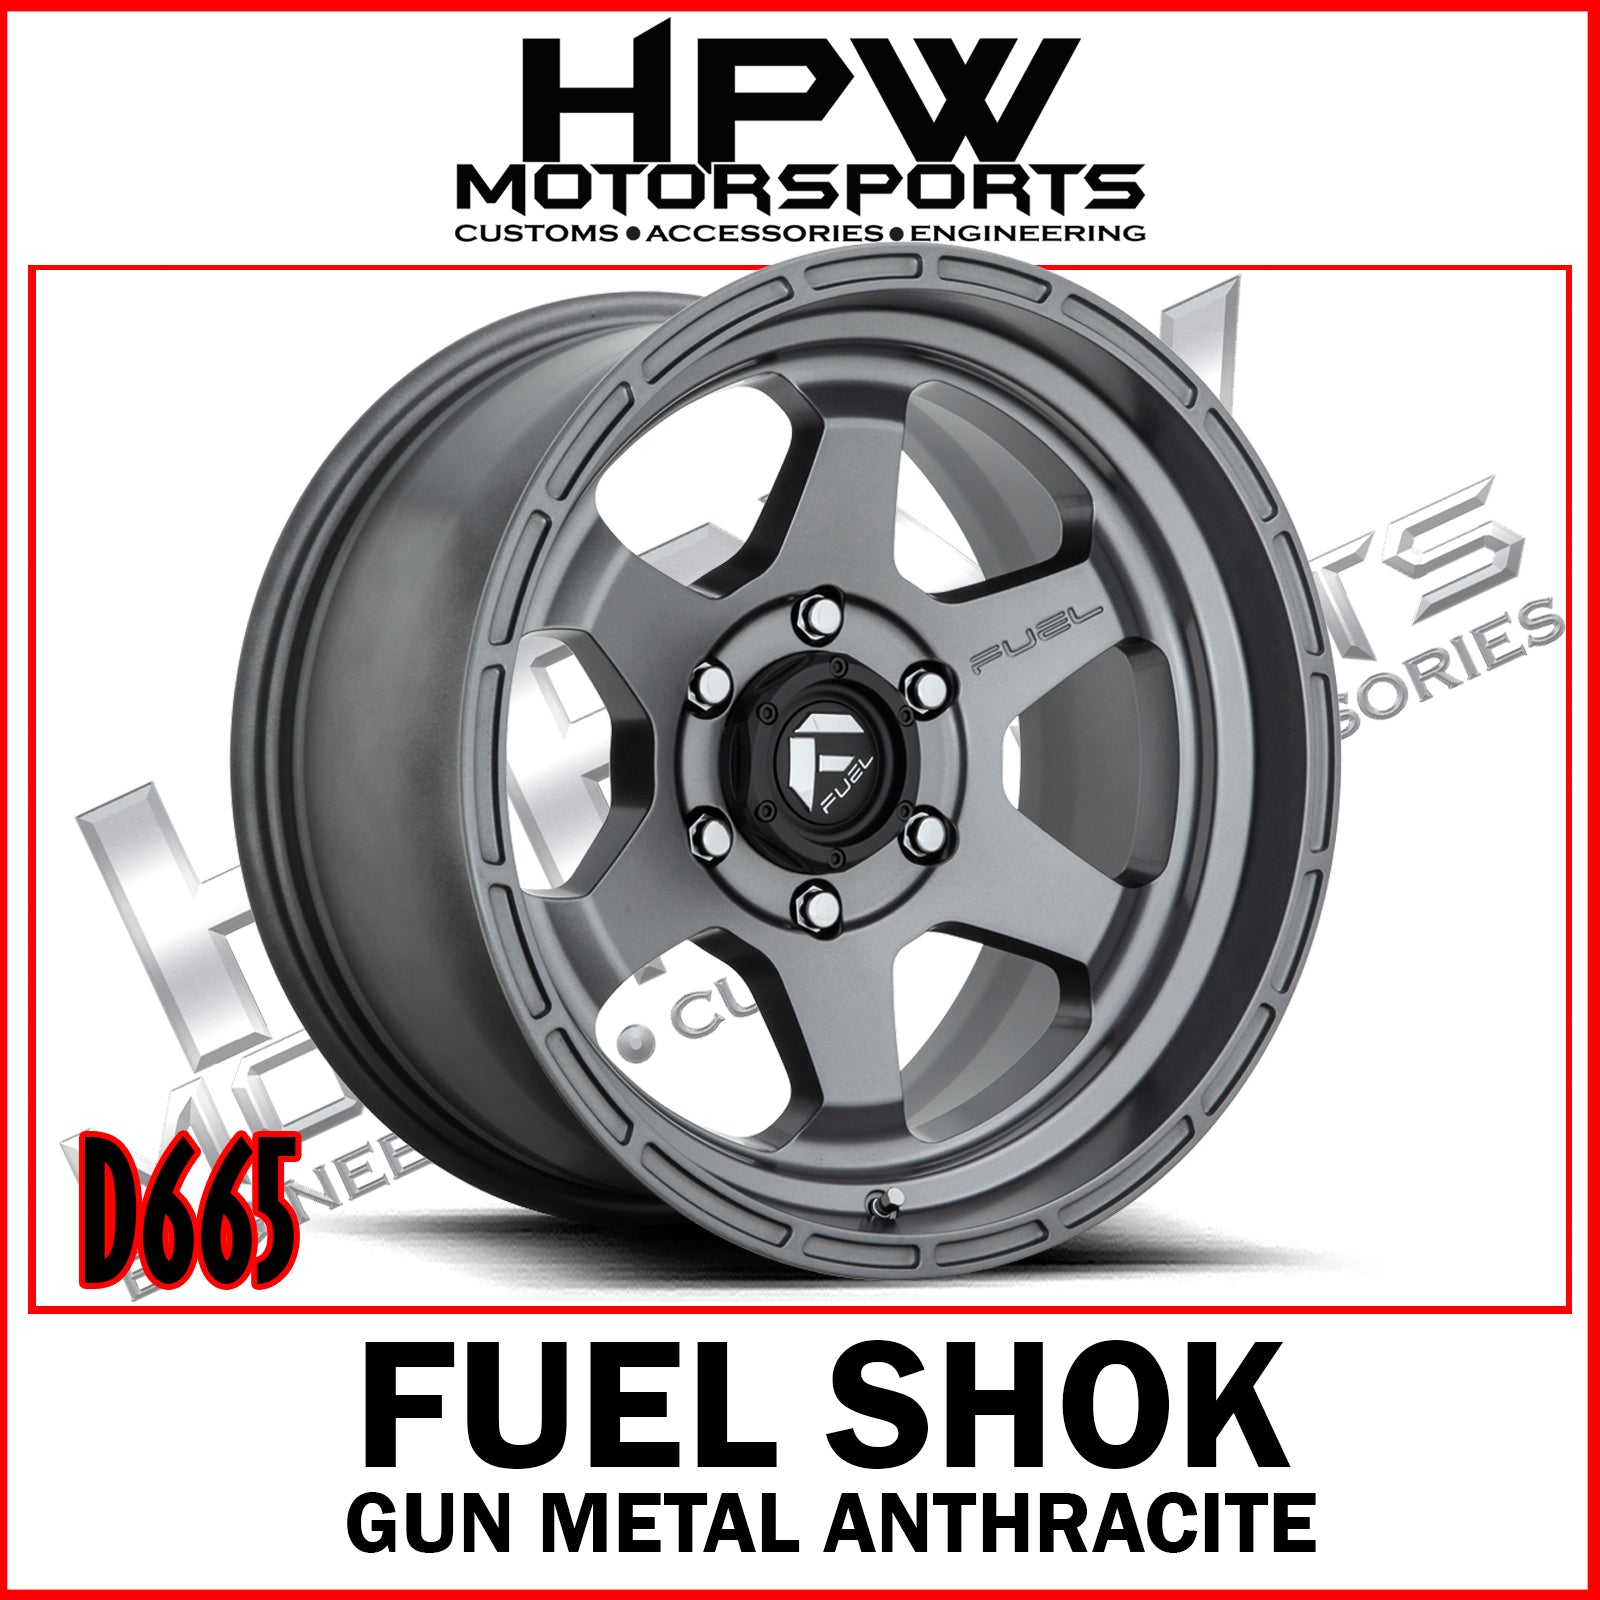 Copy of (17x10 -18) D665 FUEL SHOK - GUN METAL ANTHRACITE - Set of 4